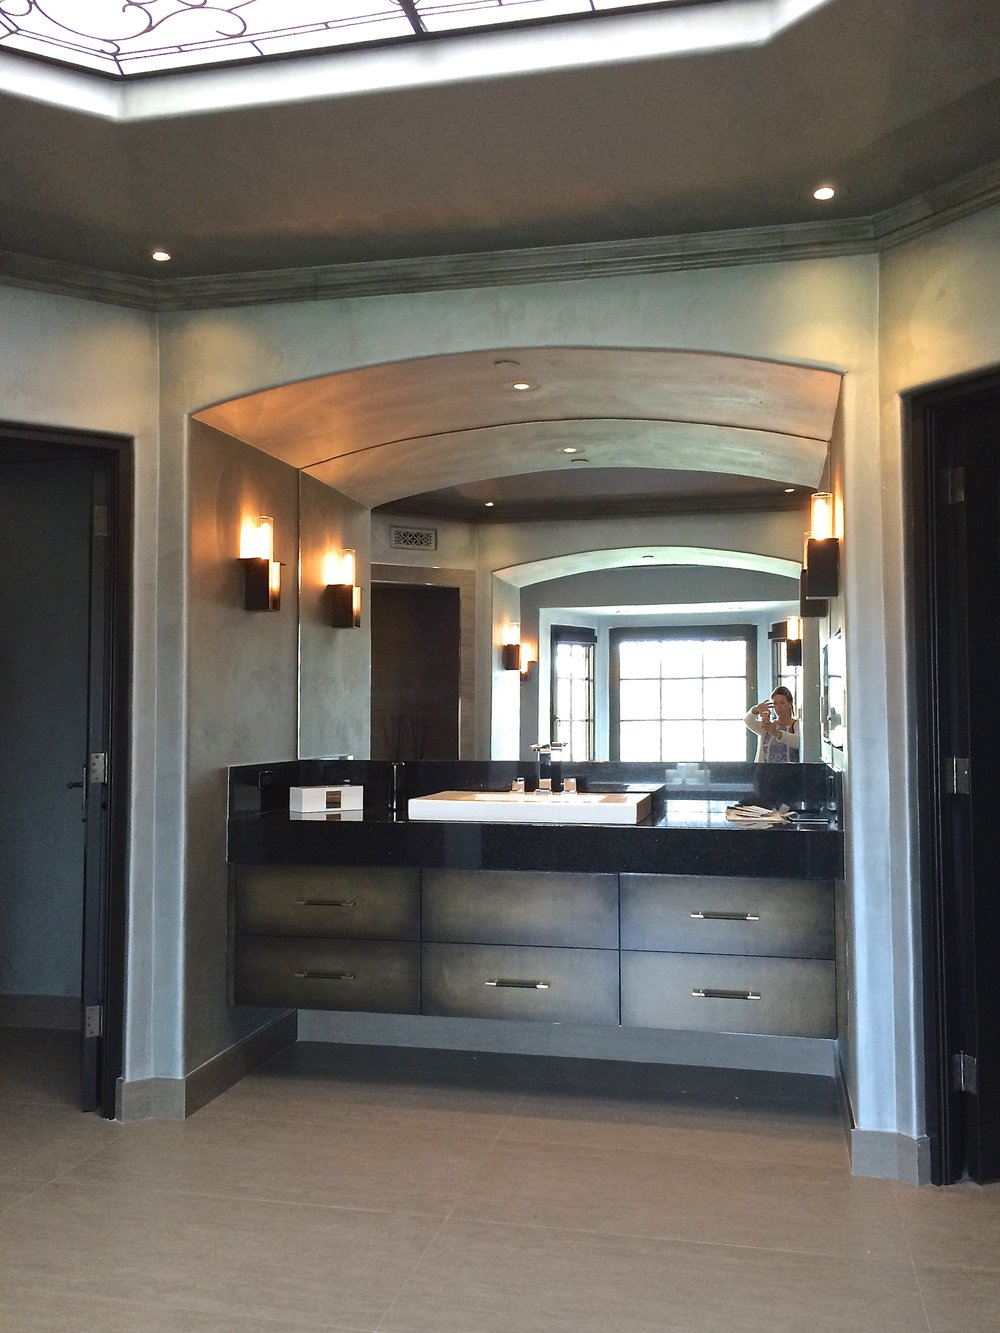 Faux suede plaster walls and custom paint finish on the cabinets.